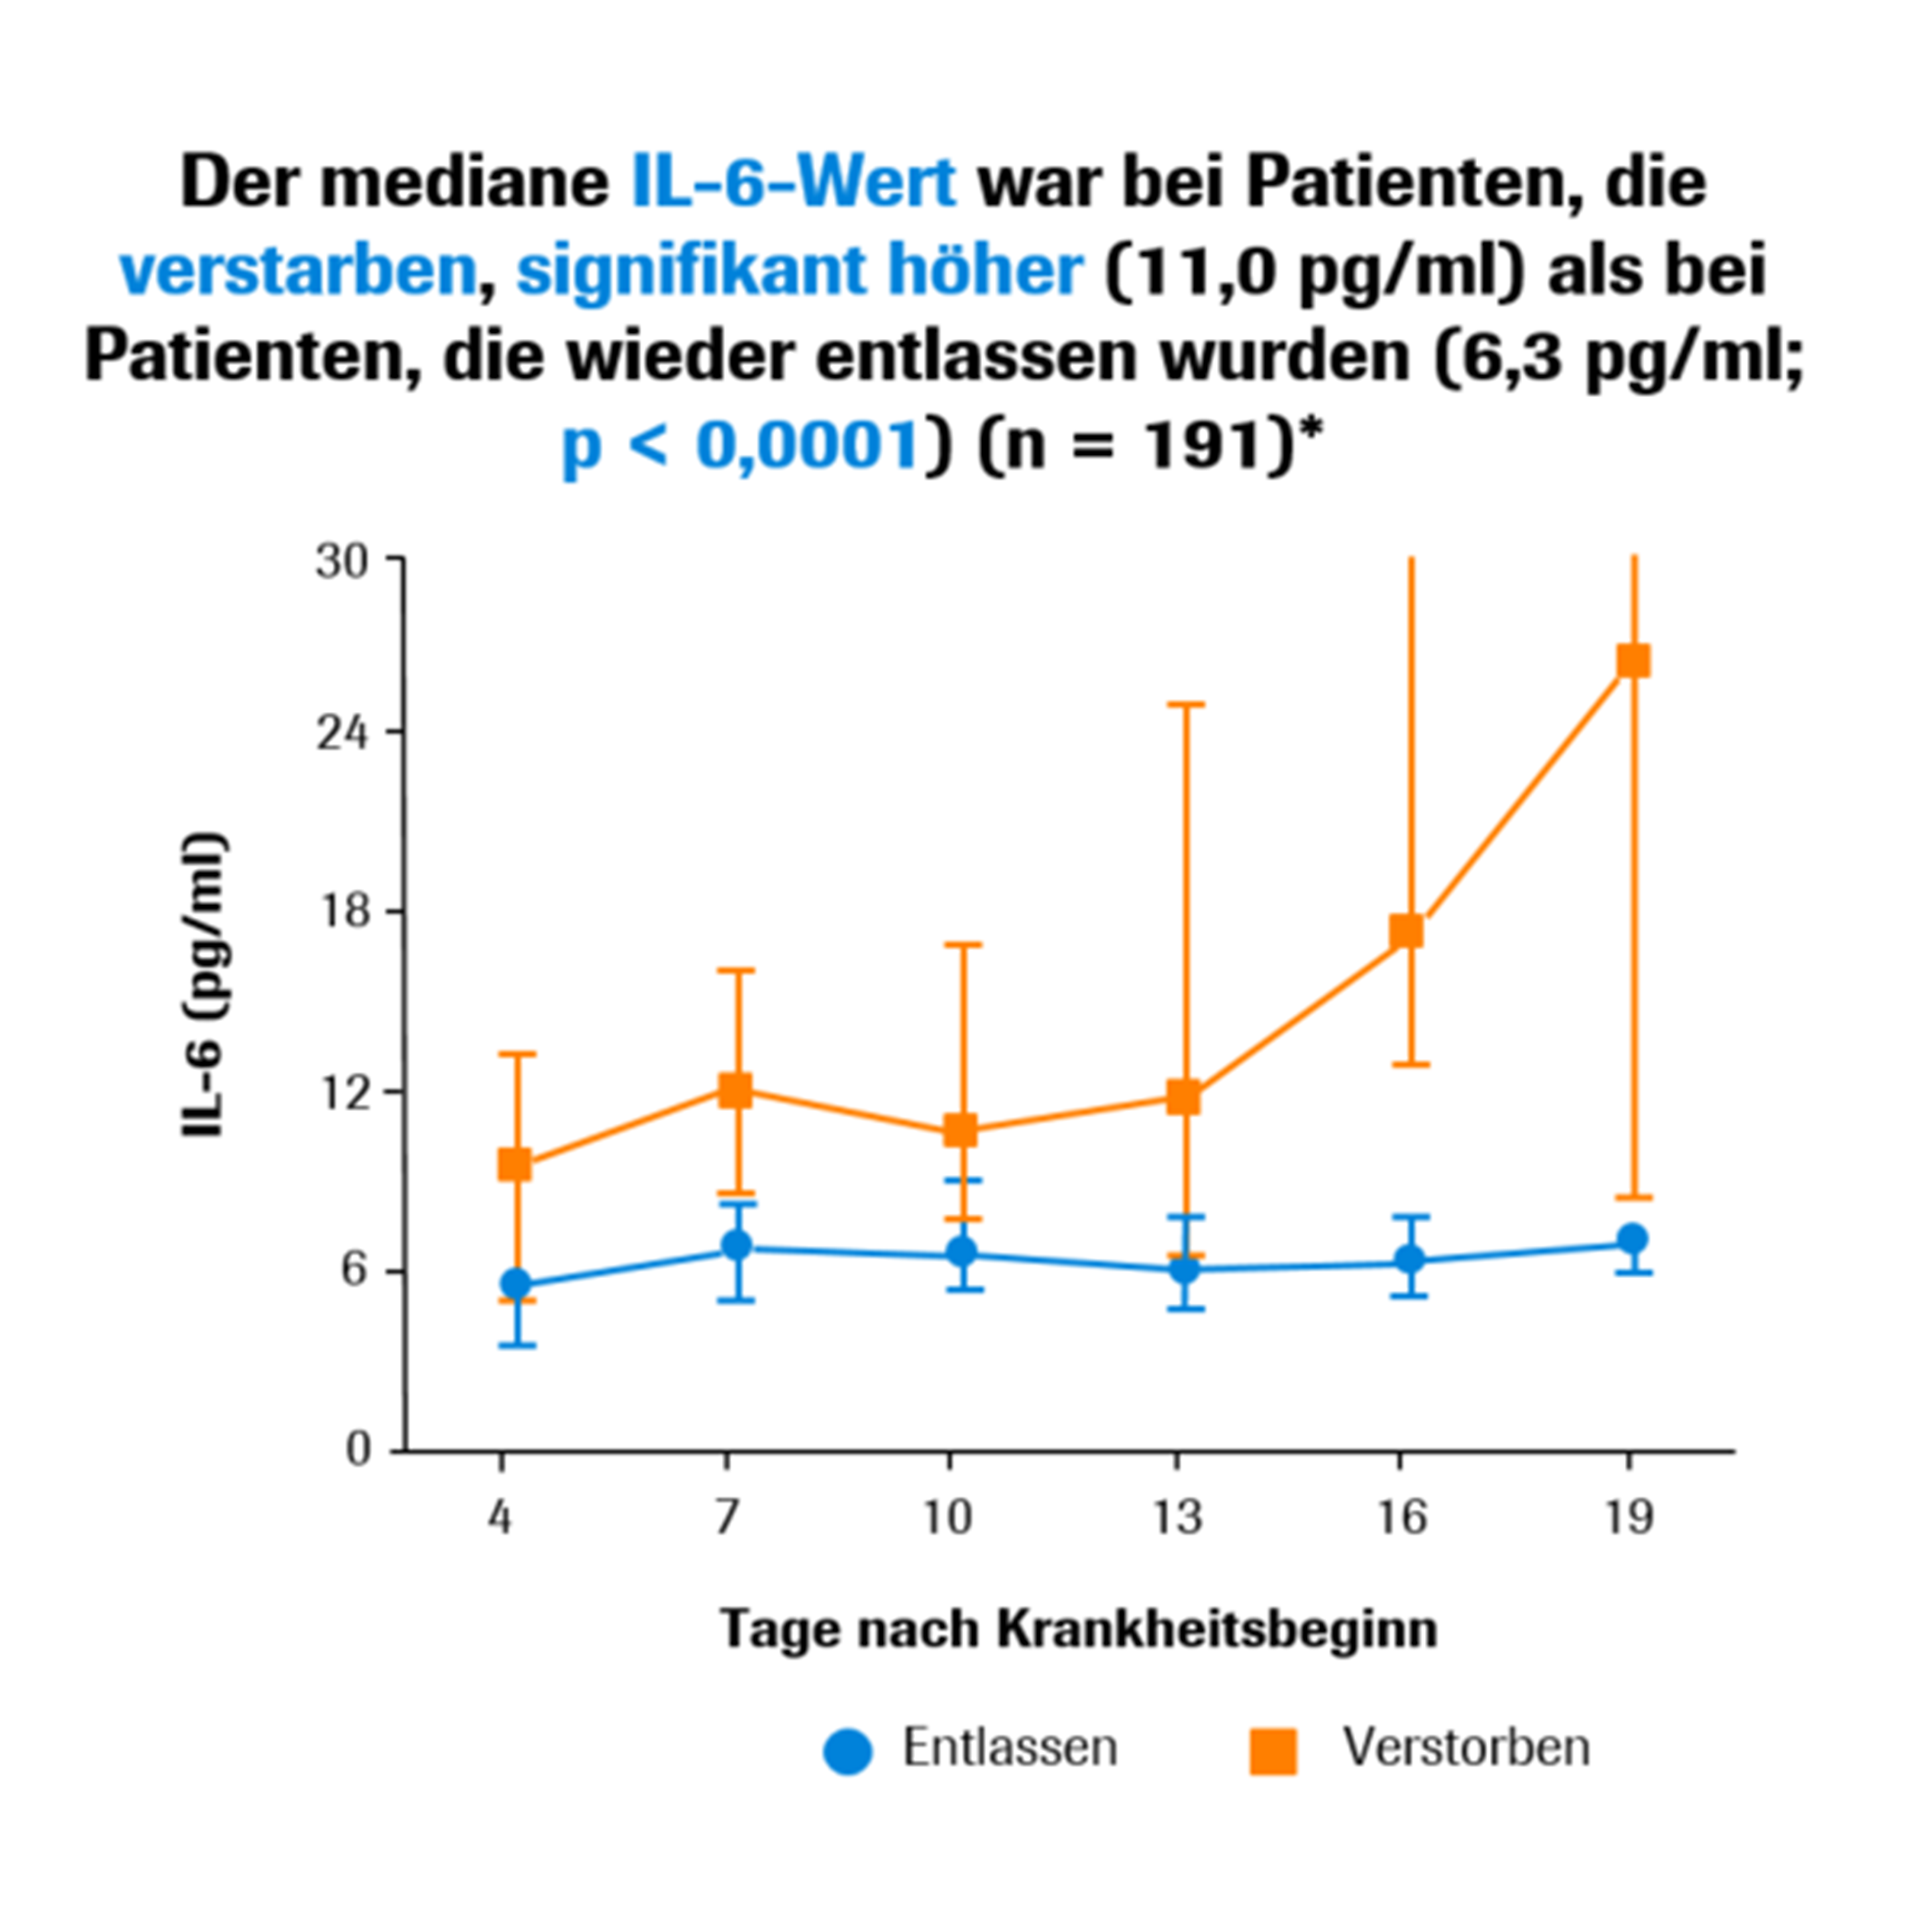 Median IL-6 was significantly greater in patients that died